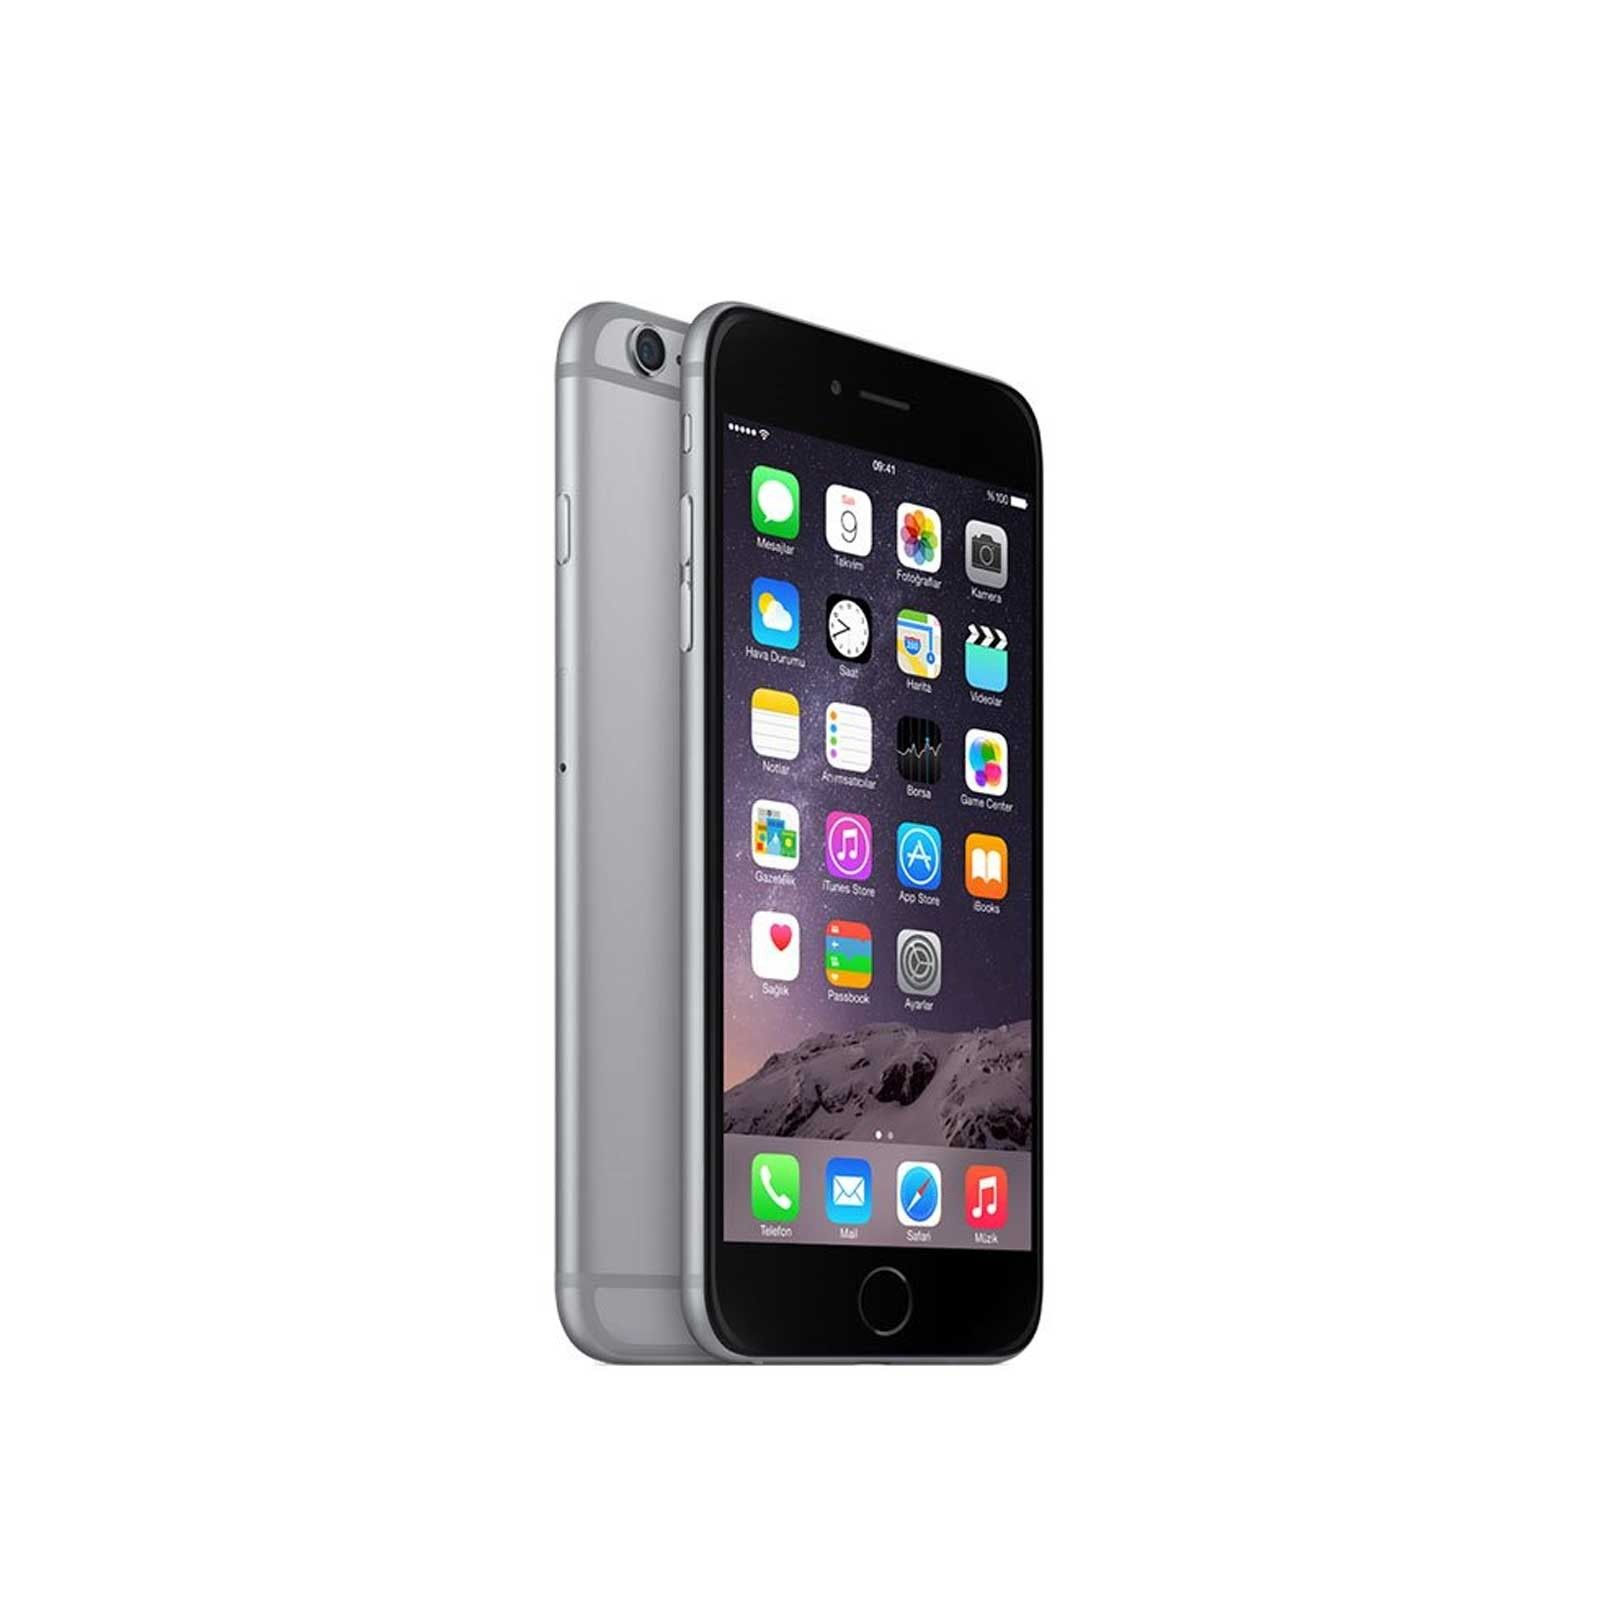 Apple Iphone 6s Plus Space Grey 64gb Buy Apple 6s Plus 64gb At Best Prices Online From Placewell Retail With Images Iphone Repair